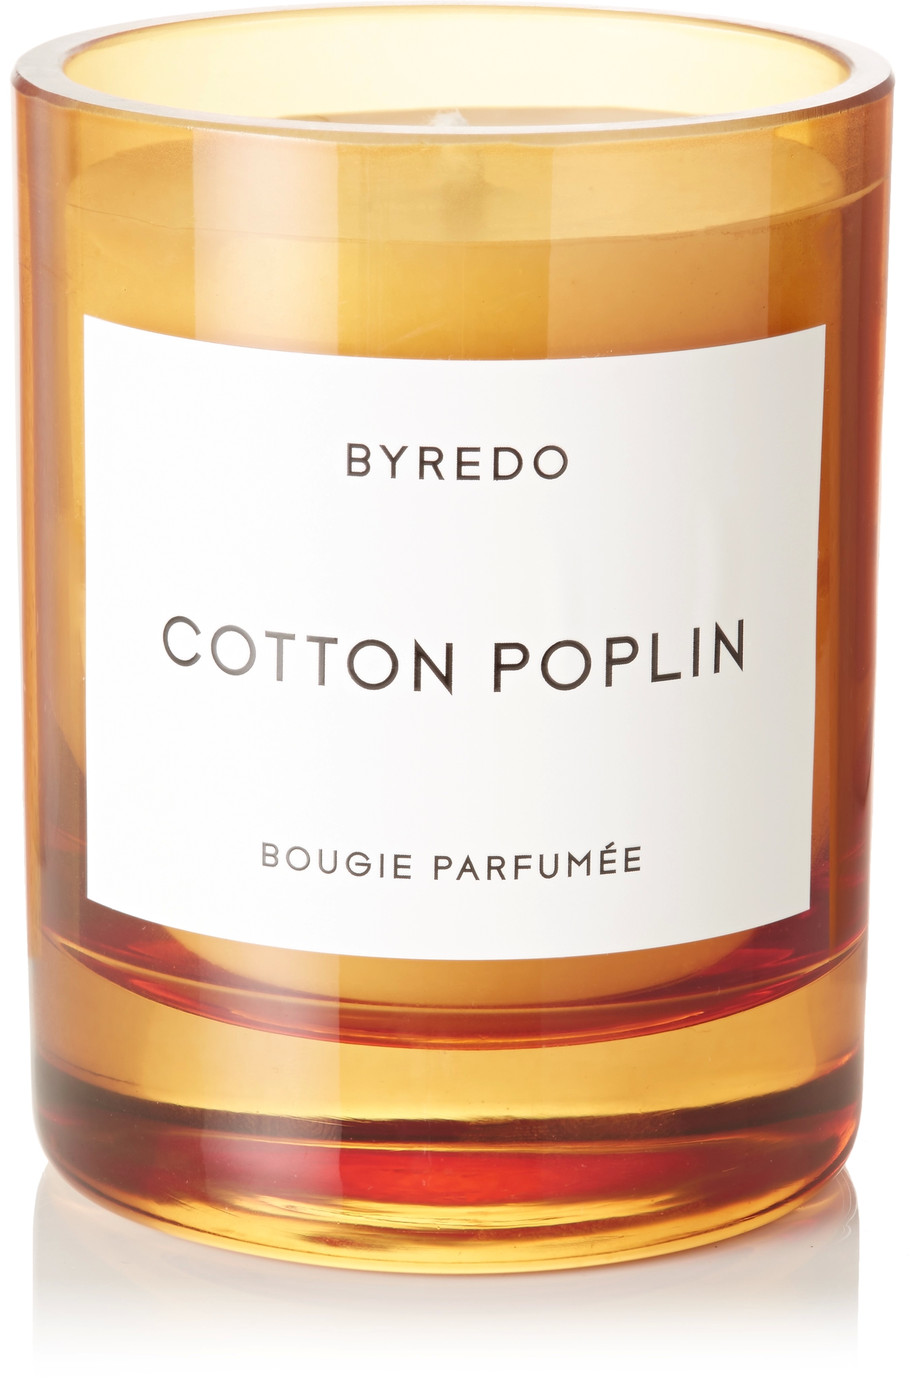 - Byredo | Cotton Poplin Candle - with 60 hours burning time and a fresh calming scent this is the perfect candle for someone who wants something a little different to the usual Jo Malone, but with the same quality and lasting fragrance. The hand painted orange glass vessel is also a smart touch.